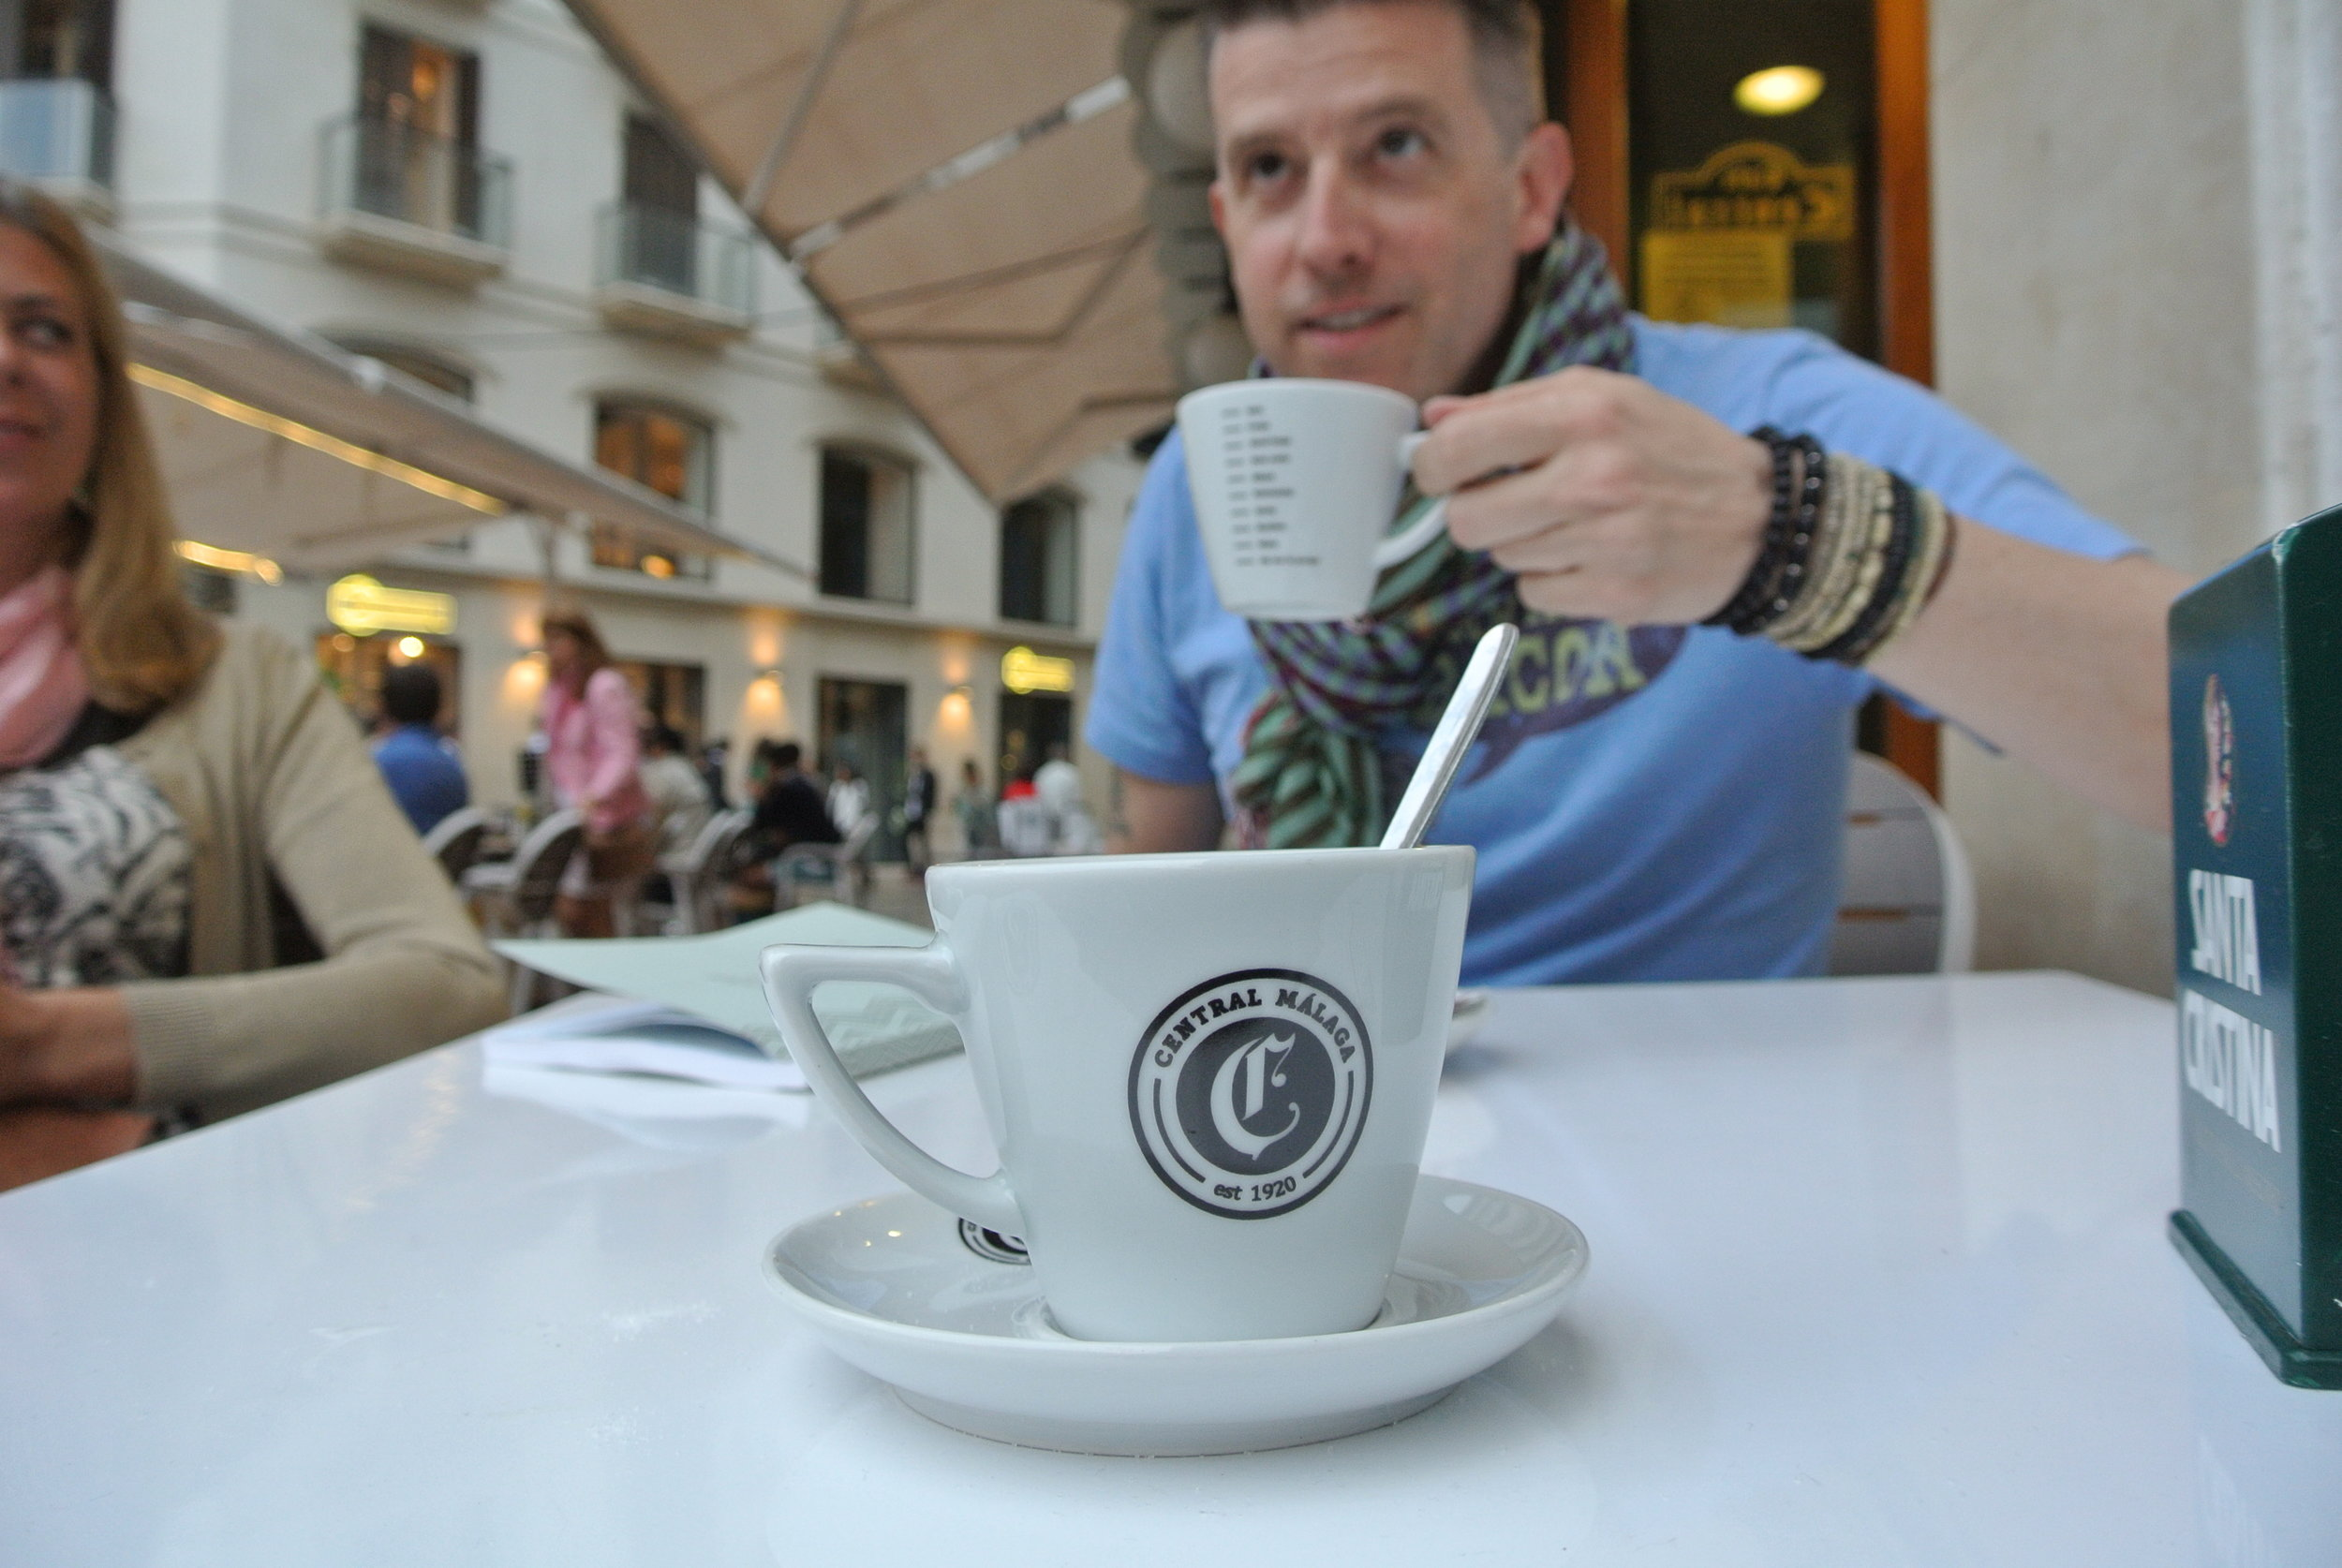 Wally enjoys a coffee at Café Central in Málaga, Spain. For the record, he's pretty much a mitad kind of guy